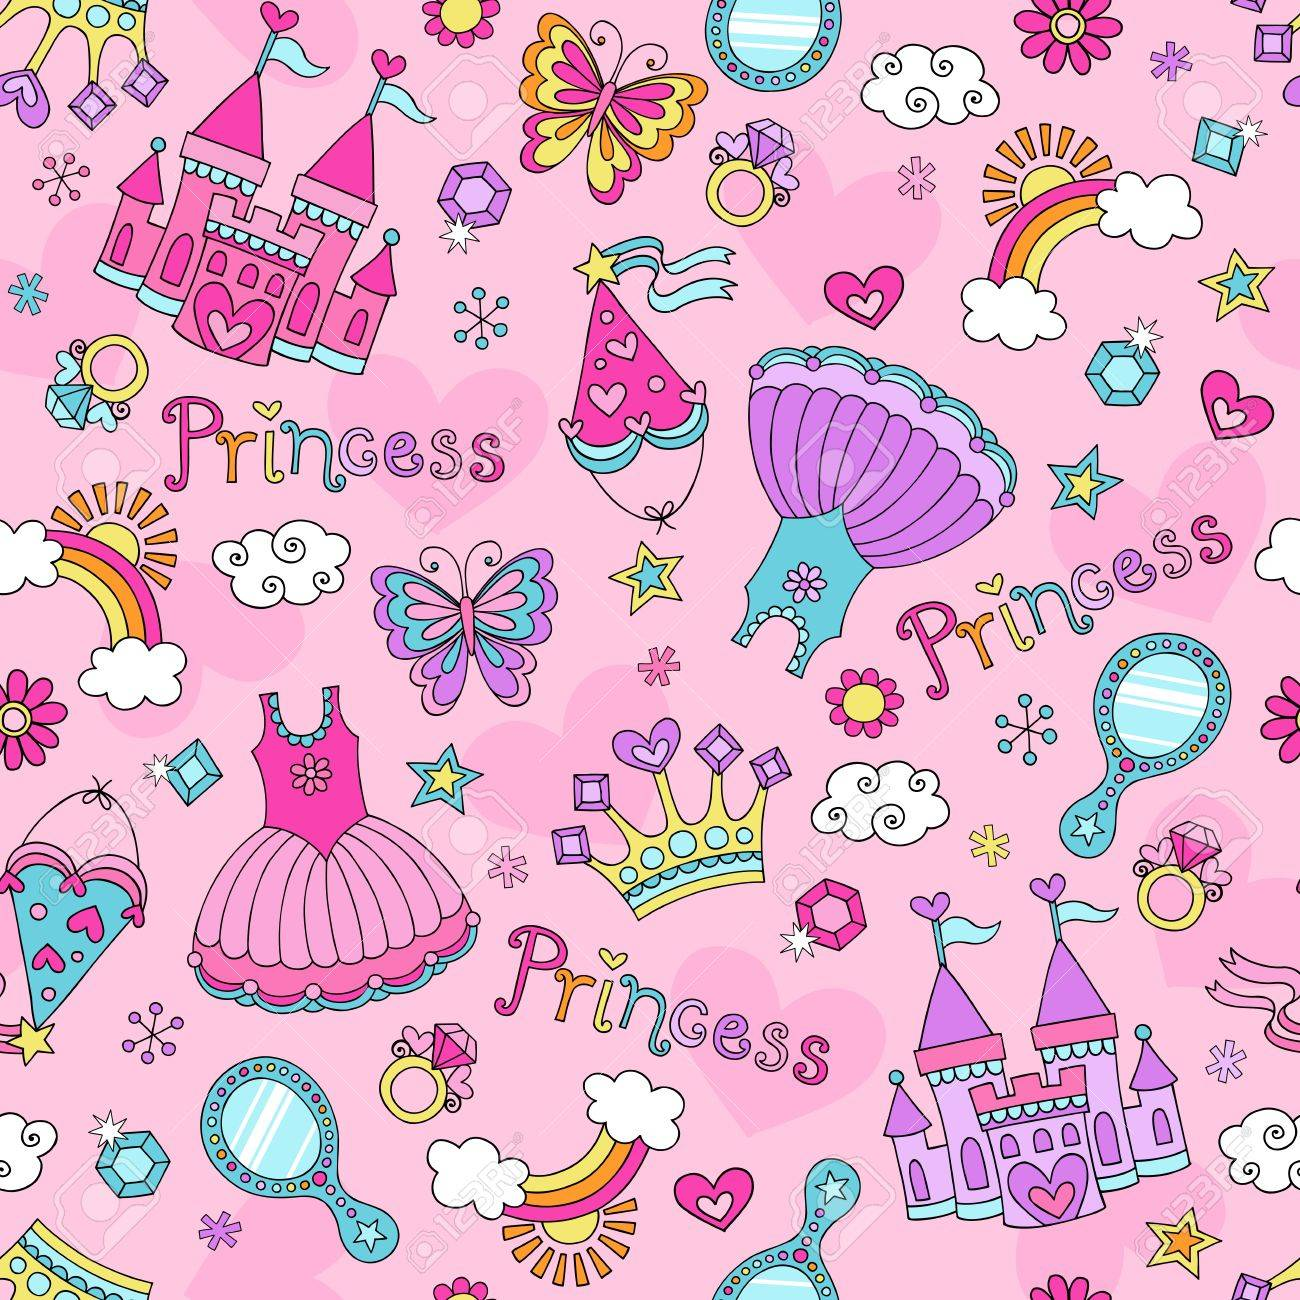 Fairytale Princess Seamless Pattern with Tiara, Crown, Castle, and Tutu- Notebook Sketchy Doodle Design Elements  Design Stock Vector - 17456025